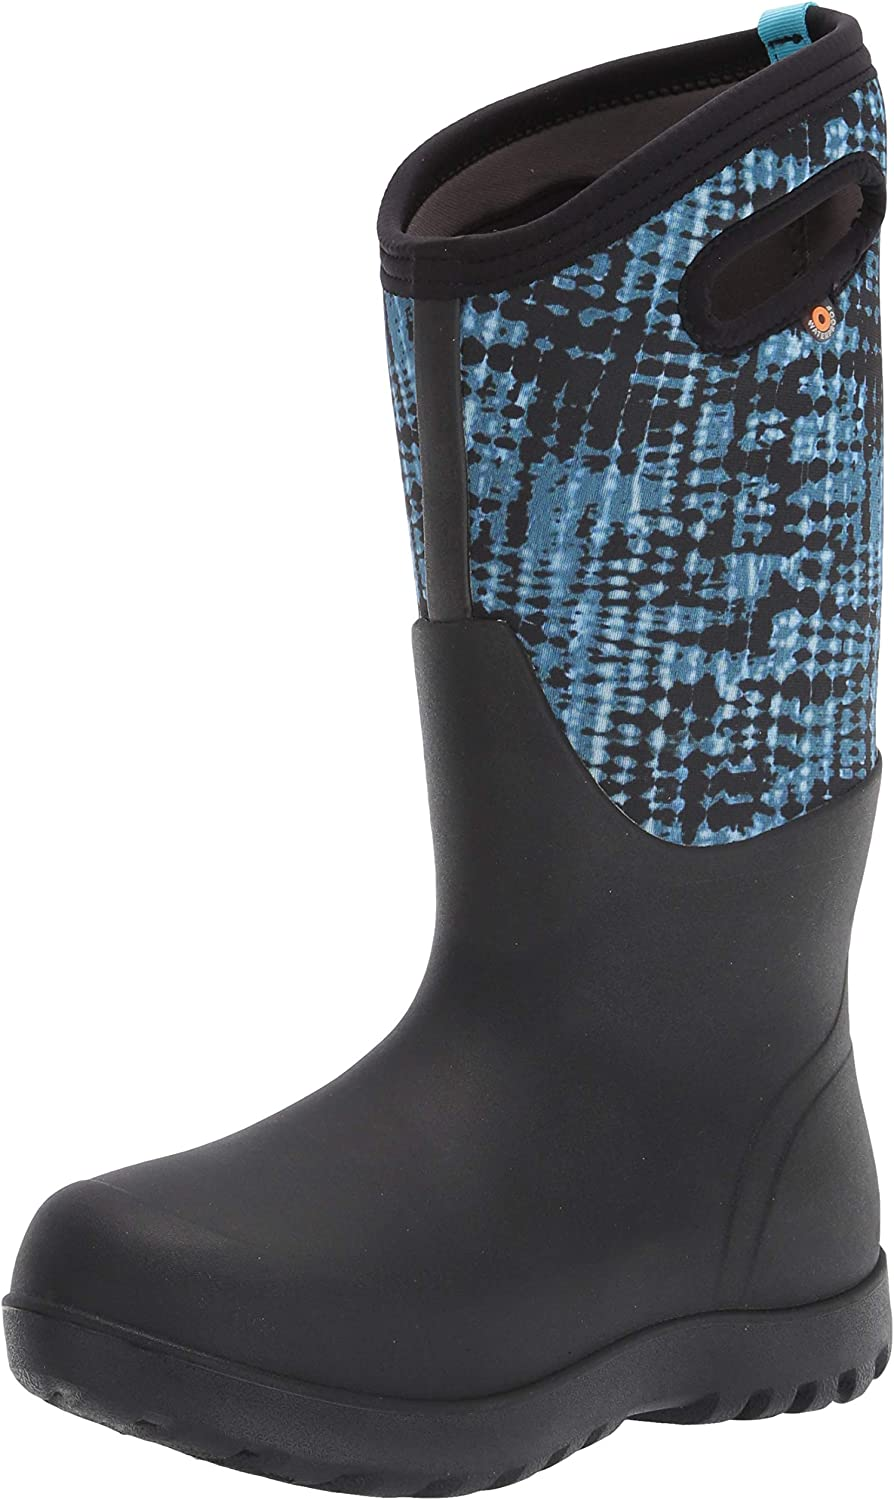 trend rank BOGS Women's Neo-Classic Tall Year-end annual account Rain Boot